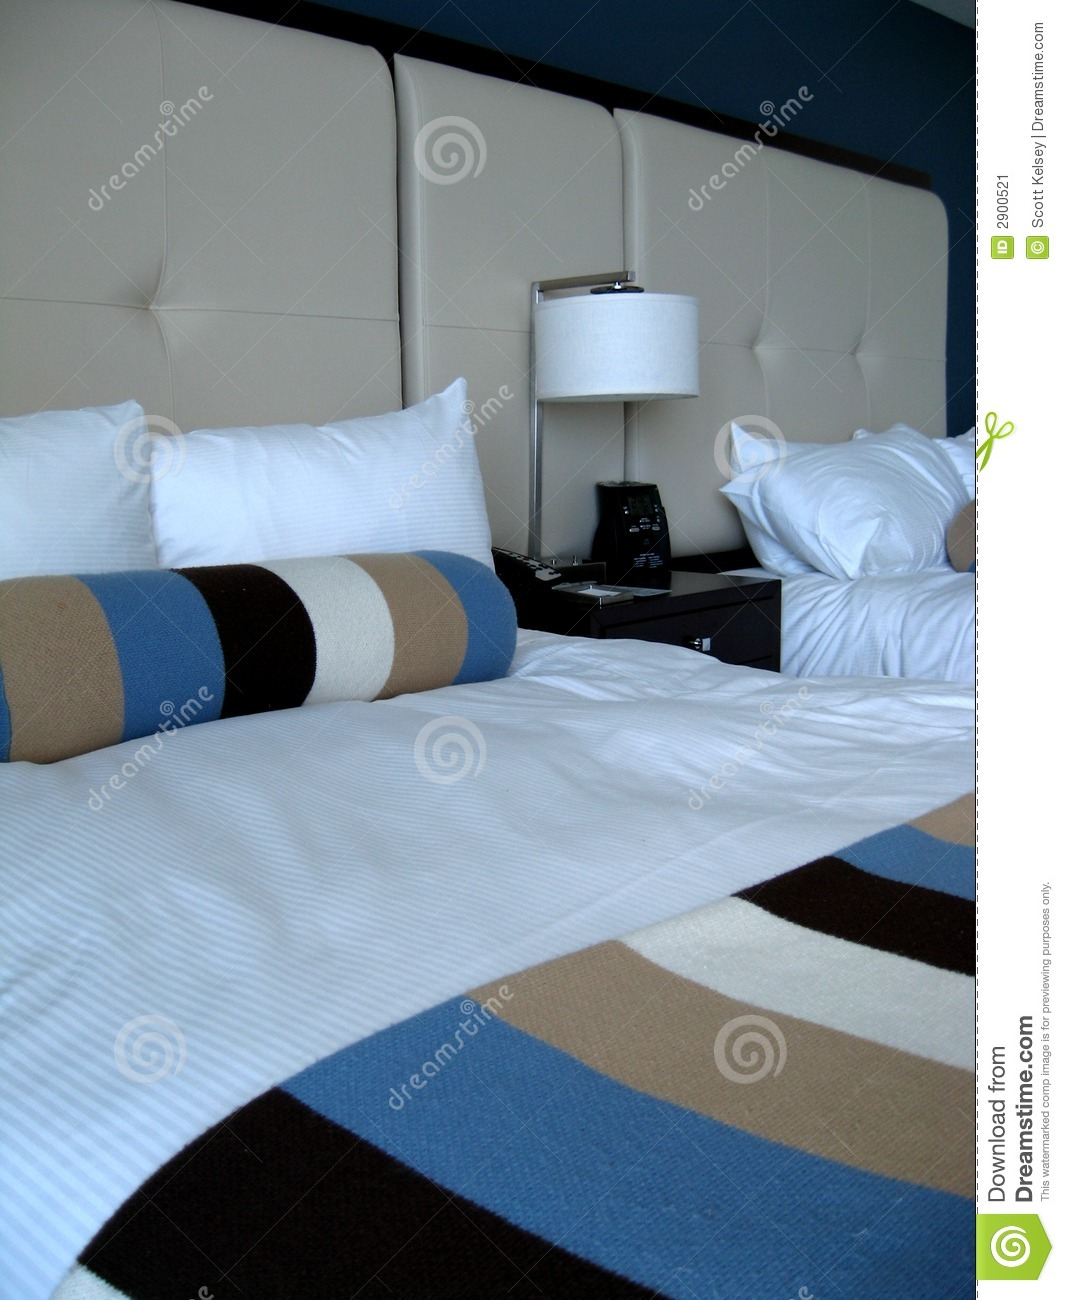 Chambre coucher moderne image stock image 2900521 - Chambre coucher moderne ...